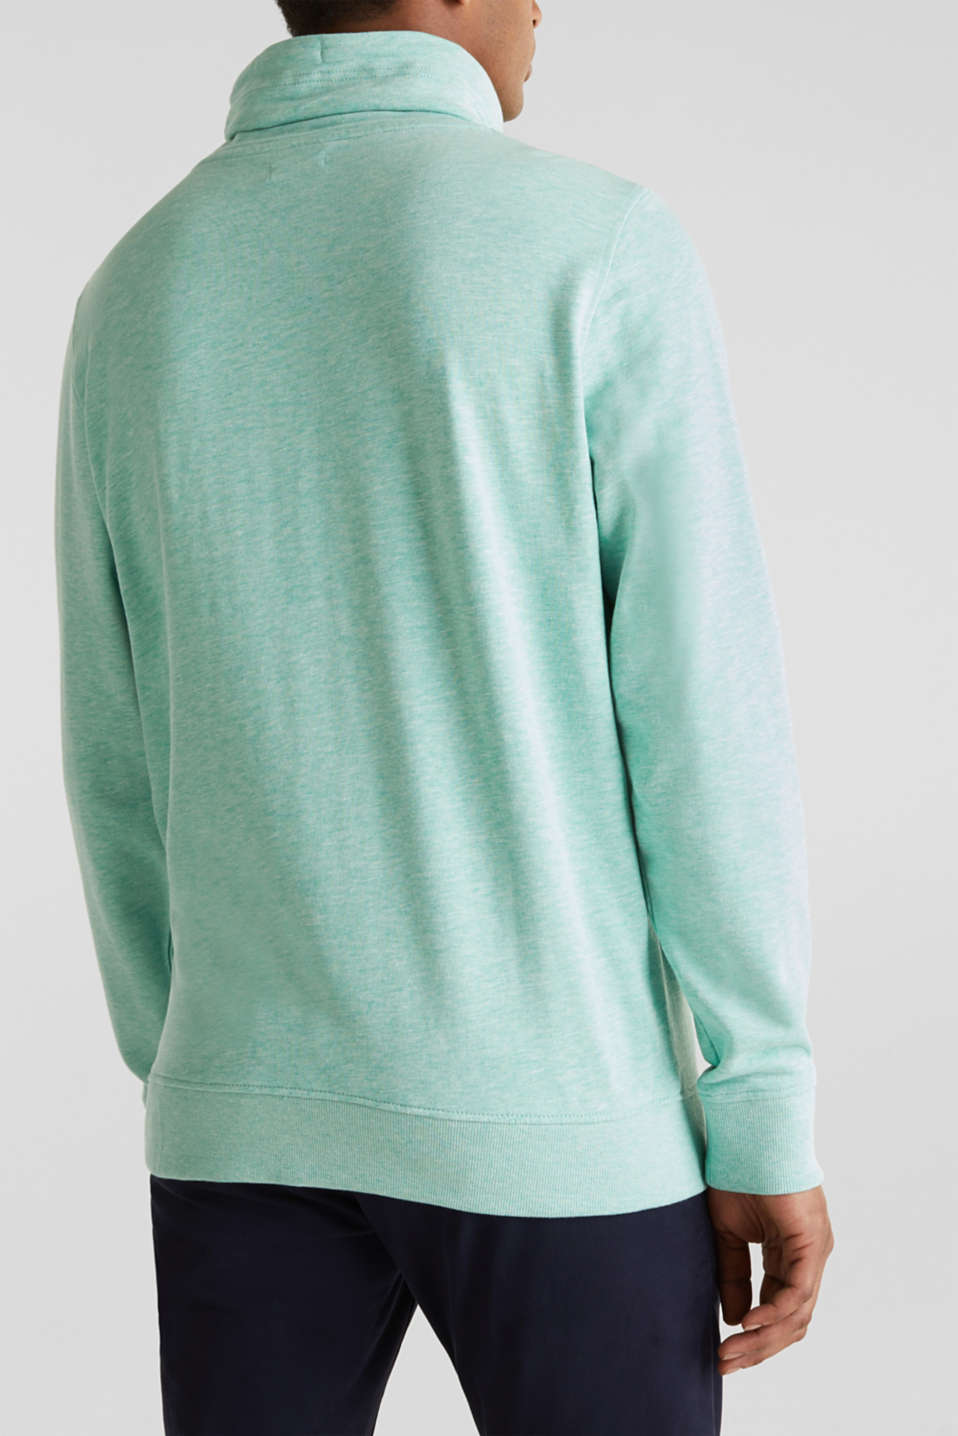 Sweatshirt with a two-tone drawstring collar, LIGHT TURQUOISE 5, detail image number 3